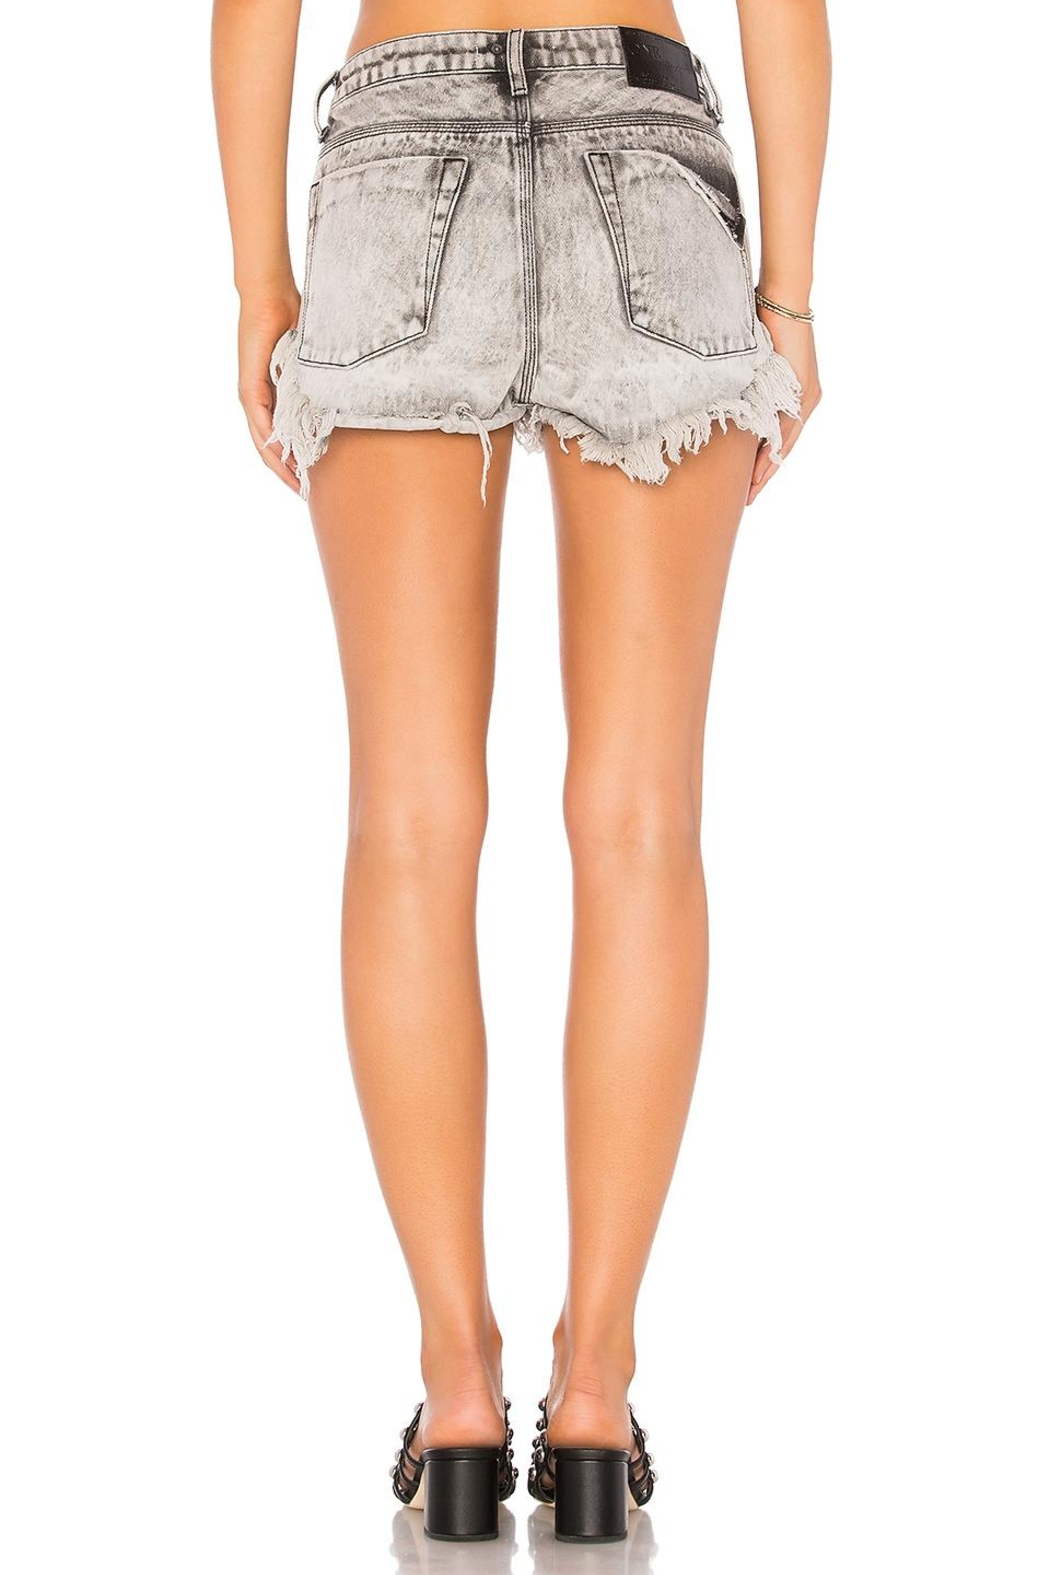 One Teaspoon Rollers Denim Shorts - Front Full Image